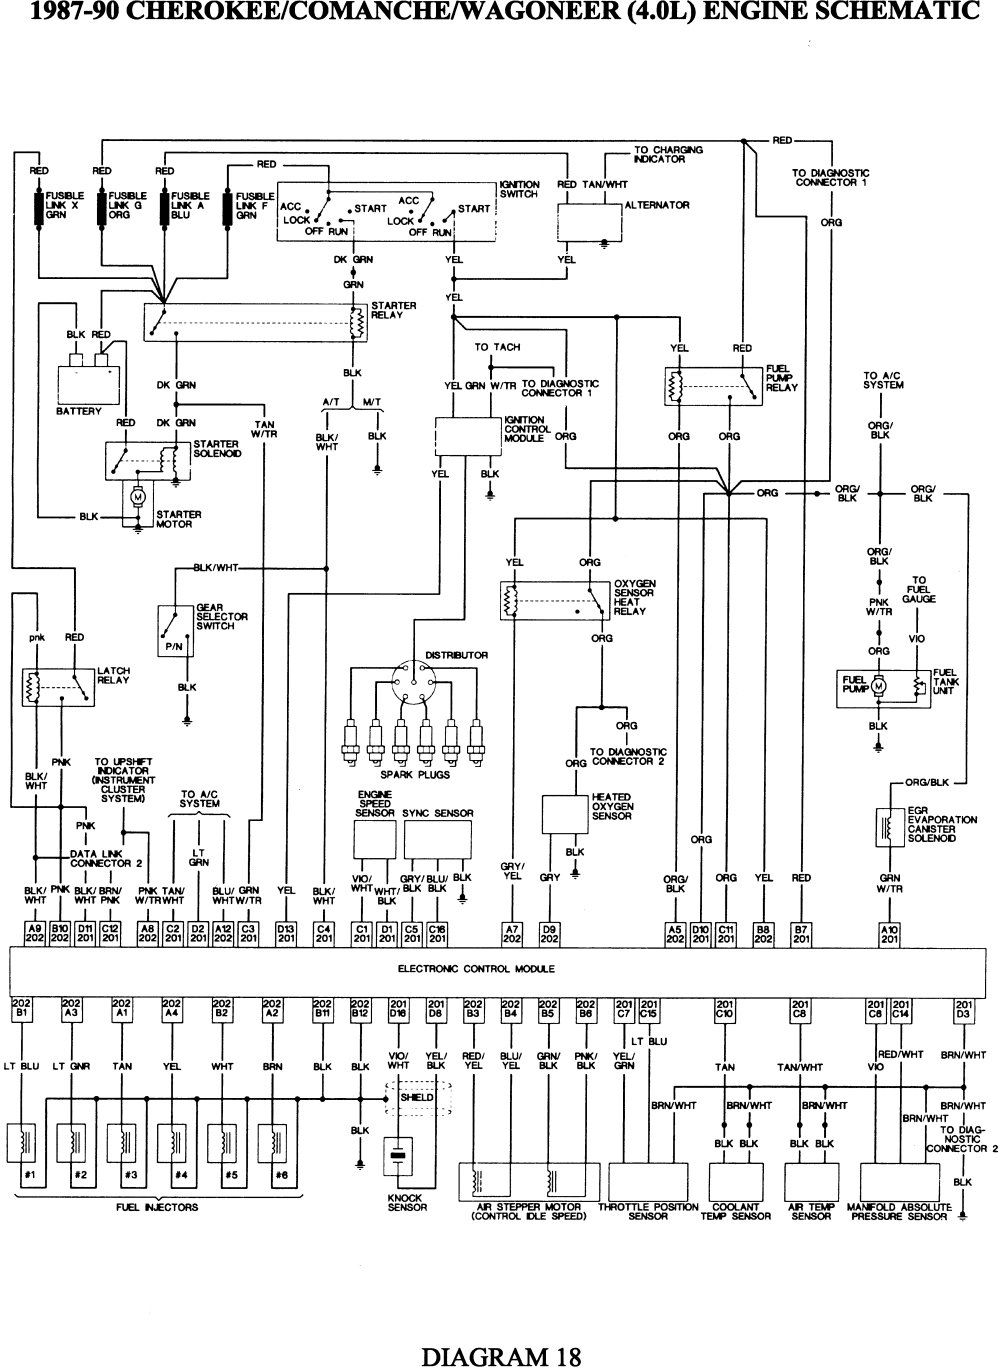 small resolution of jeep transmission wiring diagram in 97 wrangler wiring diagramjeep transmission wiring diagram in 97 wrangler wiring